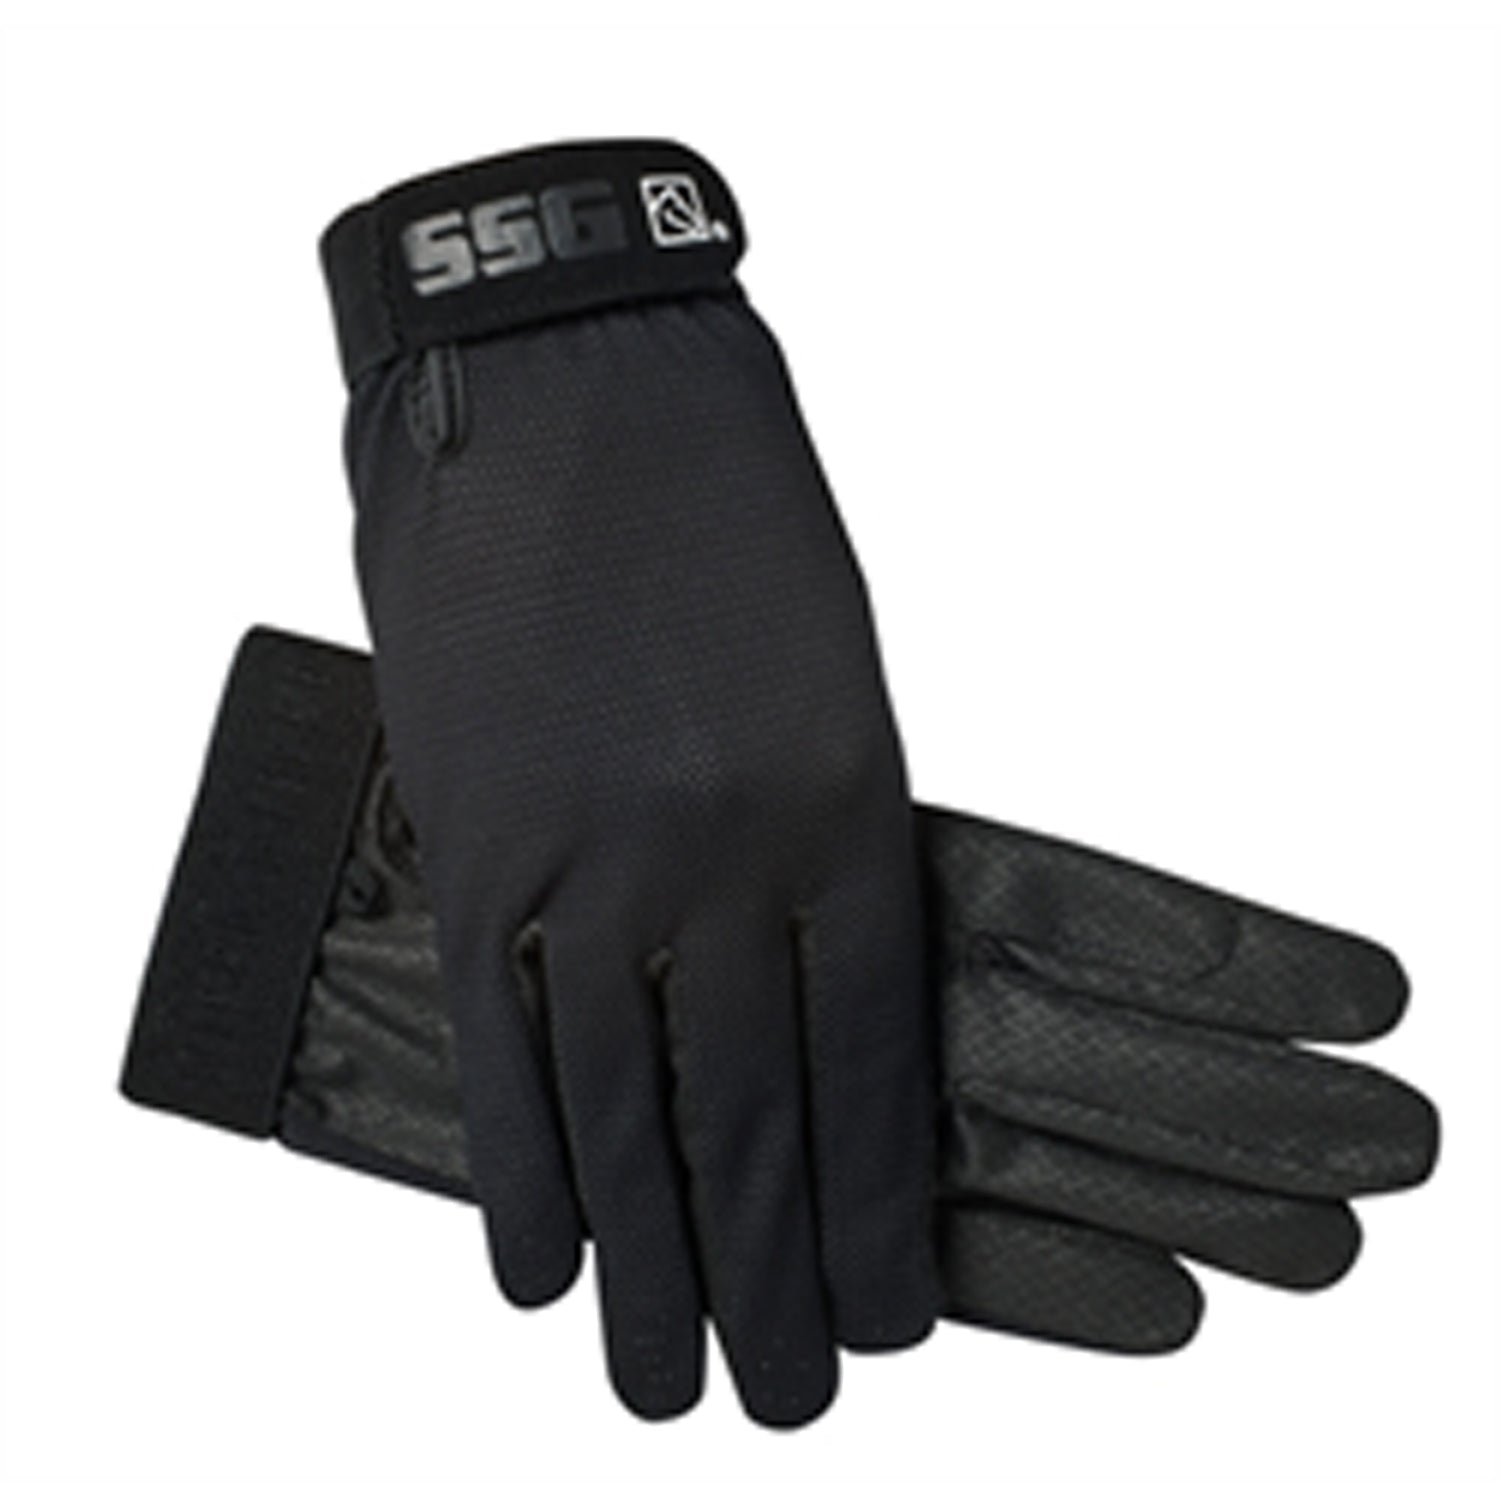 SSG Cool Tech Gloves _19